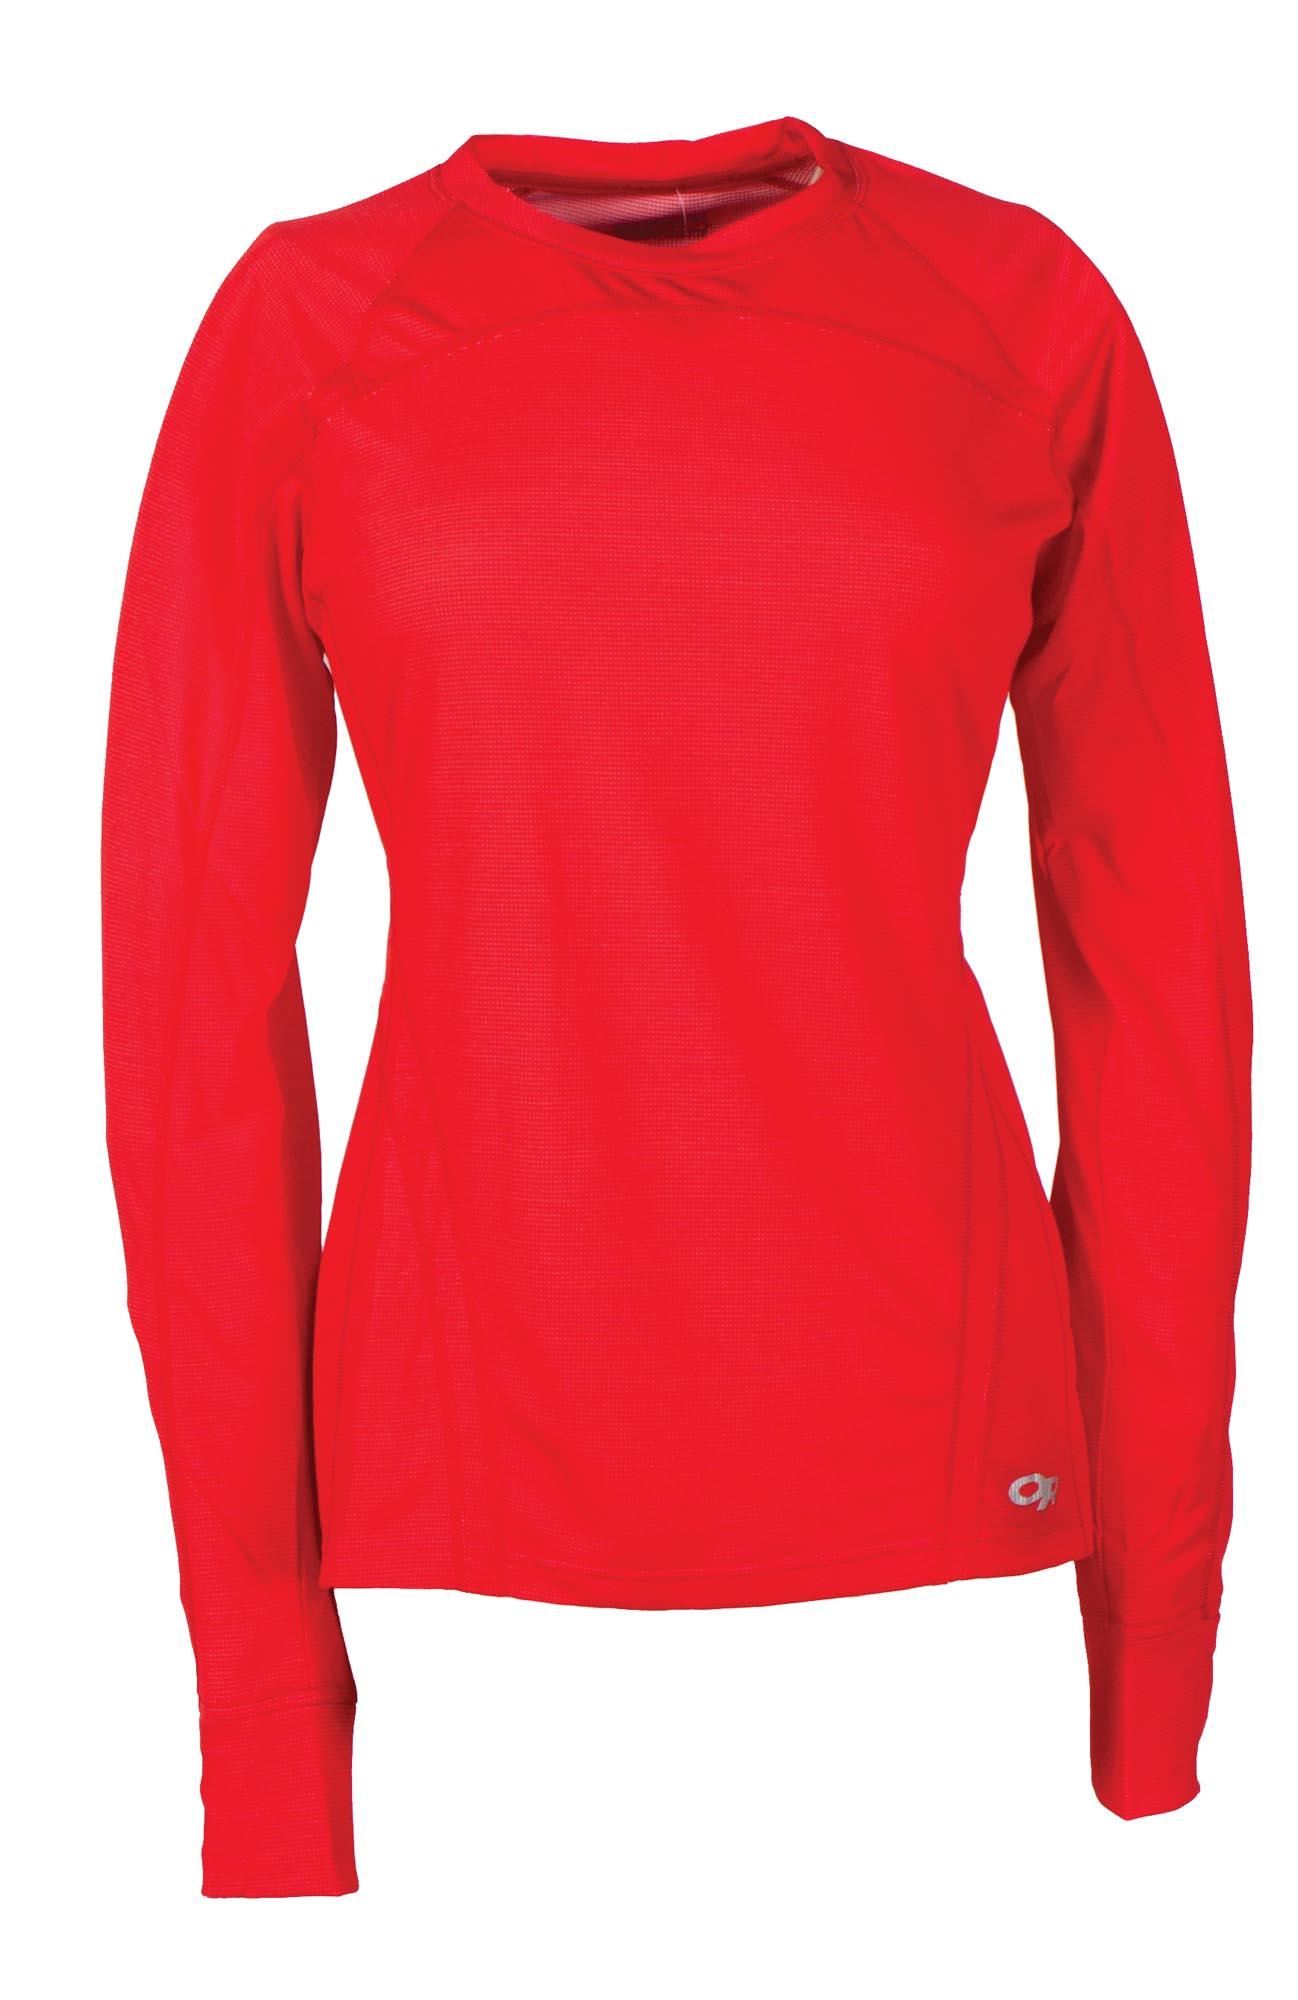 Outdoor Research women's Torque LS